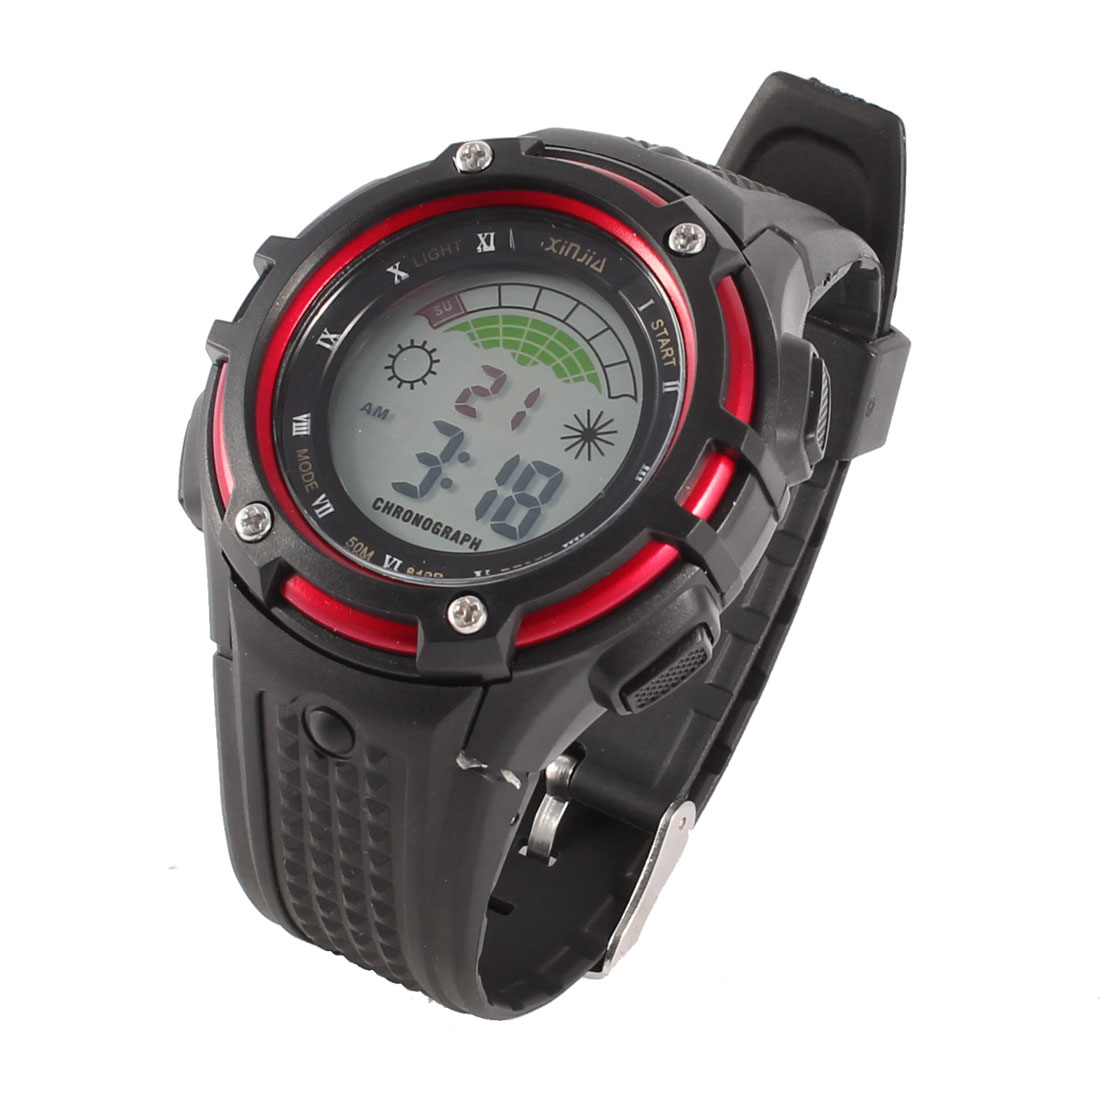 Man Black Plastic Watchband Red Round Dial Alarm Digital Sports Watch